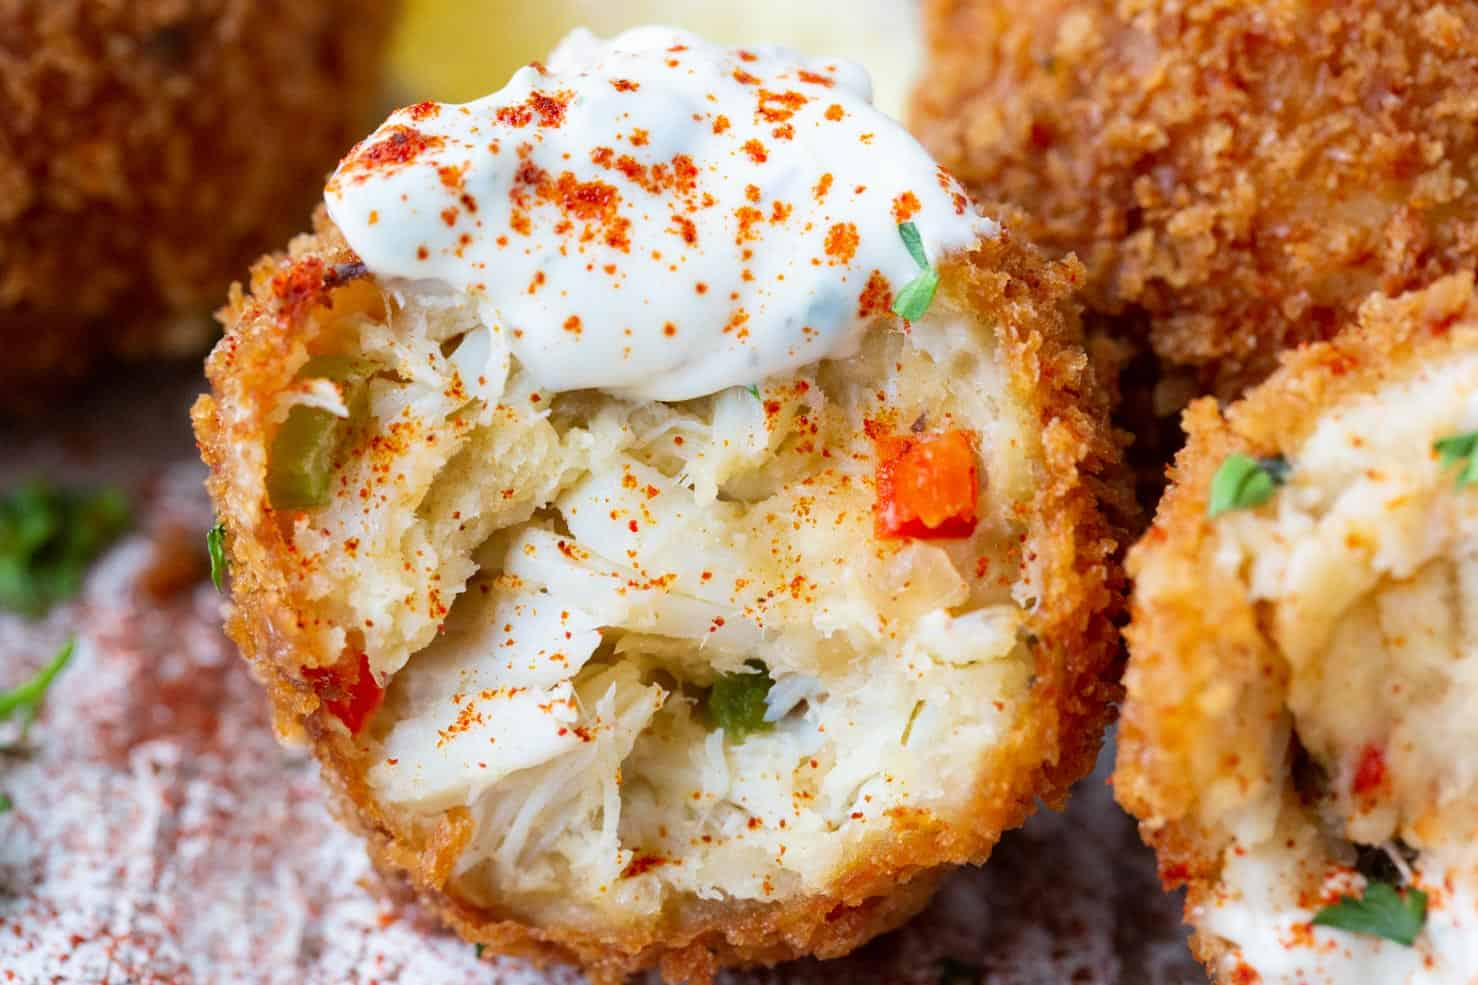 A fried crab ball, upclose dolloped with tartar.